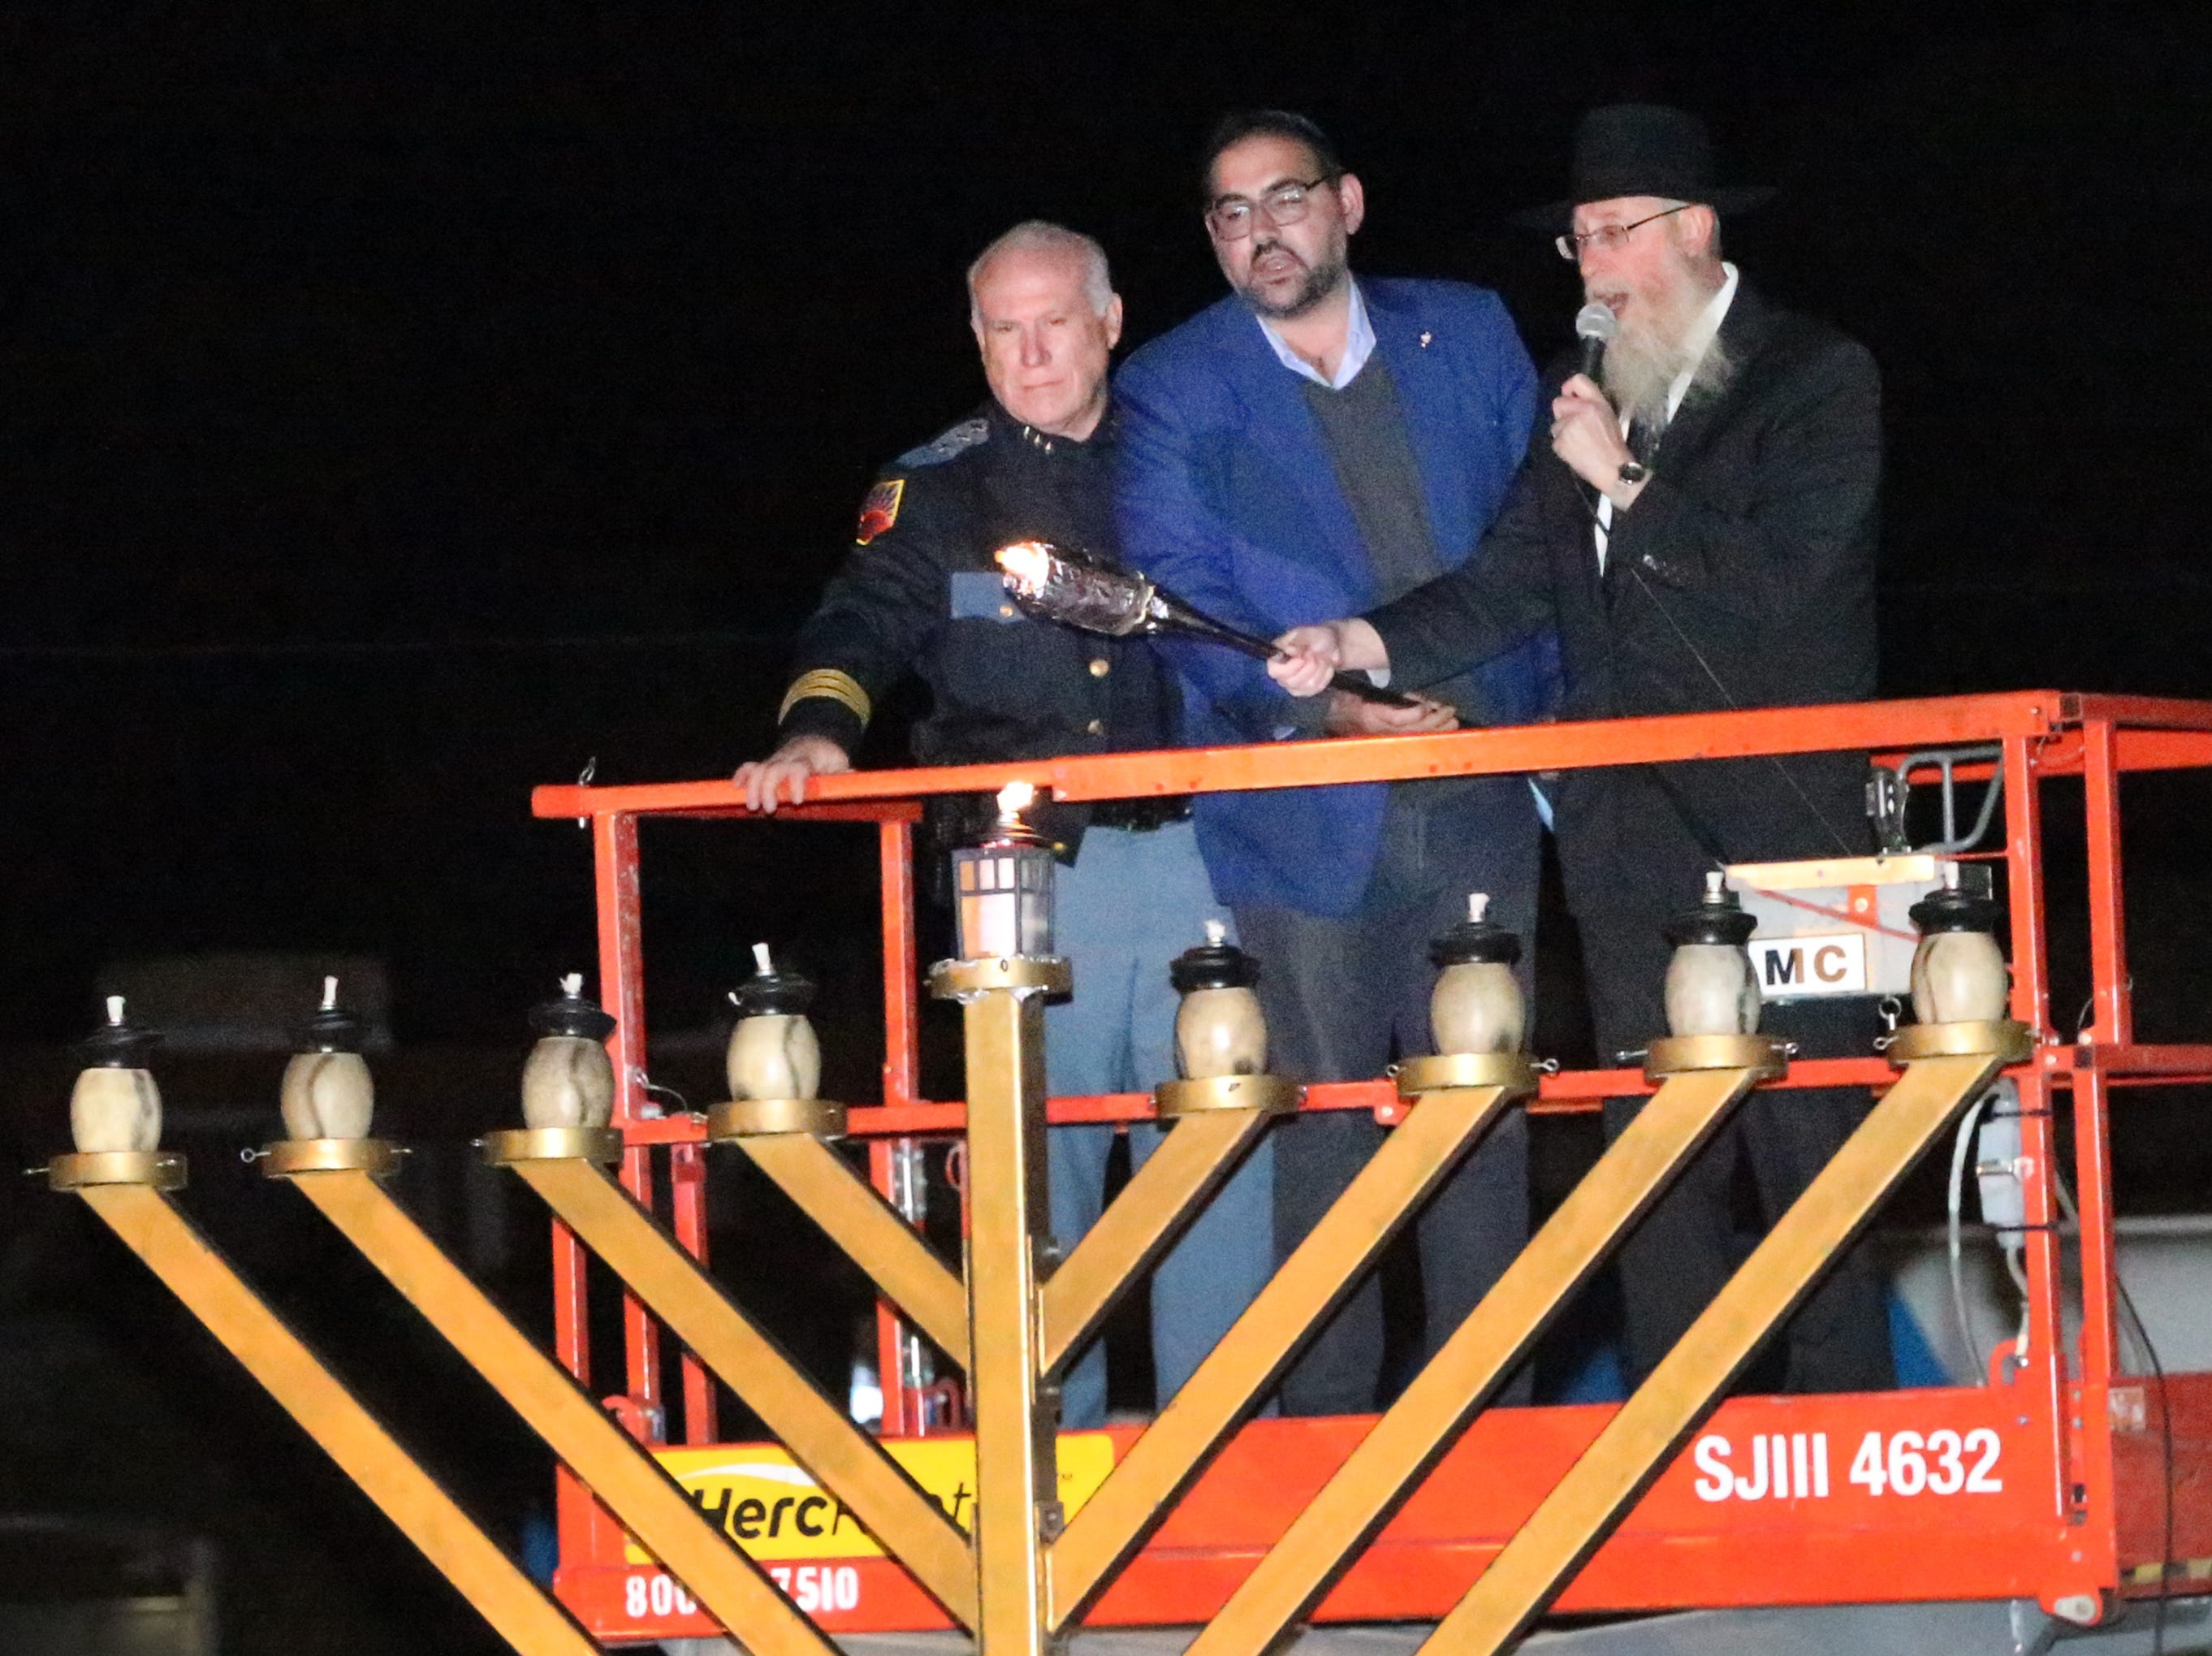 Rabbi Yisroel Greenberg, right, lights the center candle of a large menorah with help from El Paso police assistant chief Peter Pacillas, left, and Westside city Rep. Peter Svarzbein, center, Sunday night to commemorate the start of Chanukah observance.